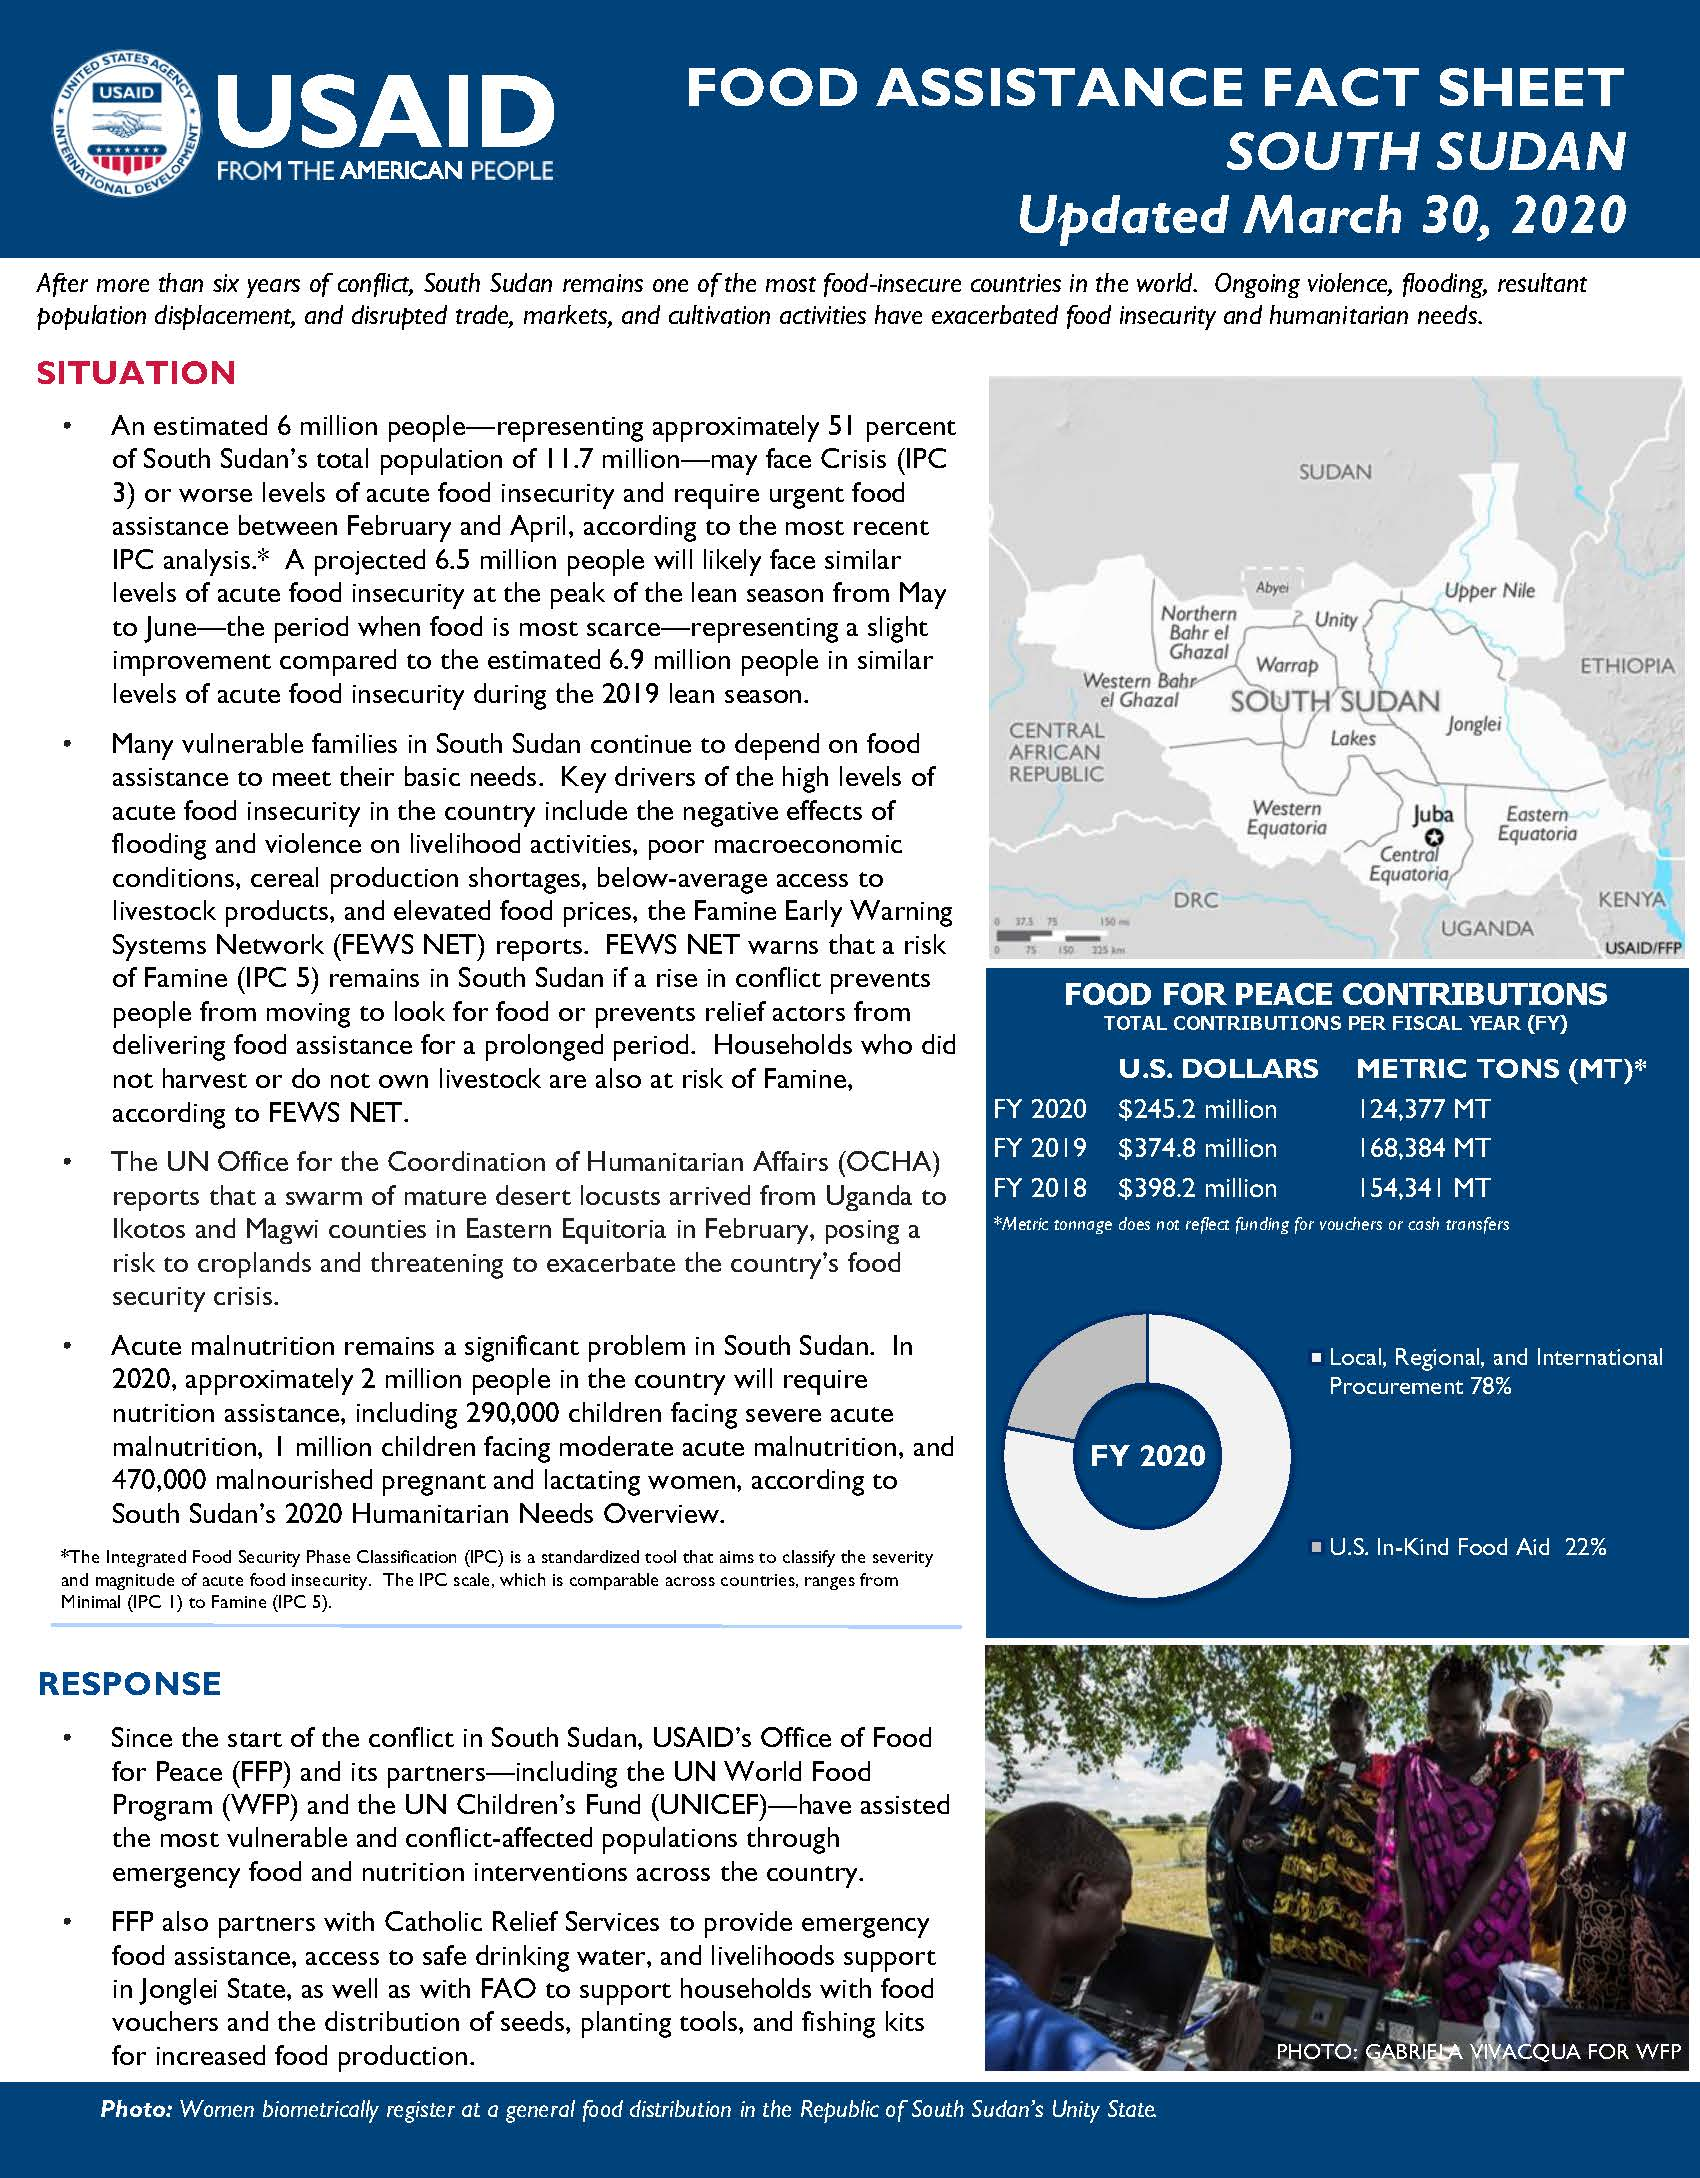 Food Assistance Fact Sheet - South Sudan